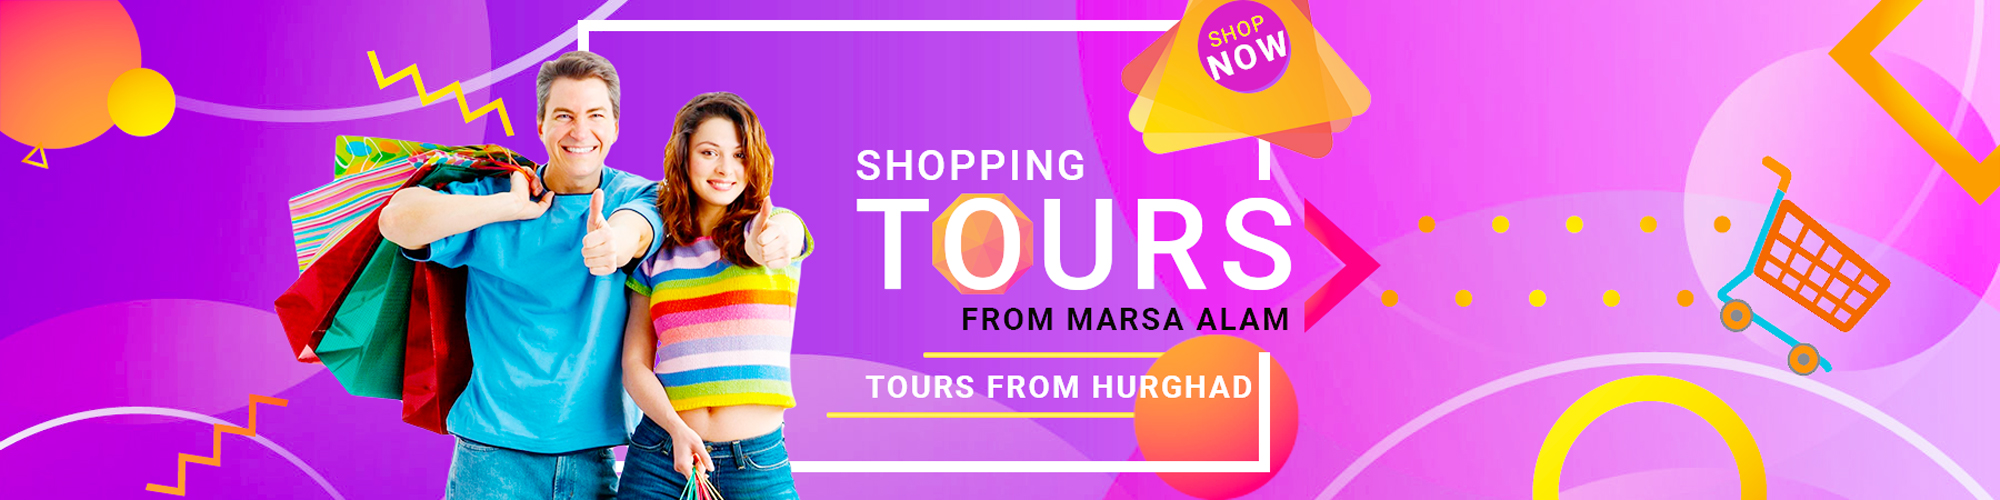 Shopping Tours from Marsa Alam - Tours from Hurghada